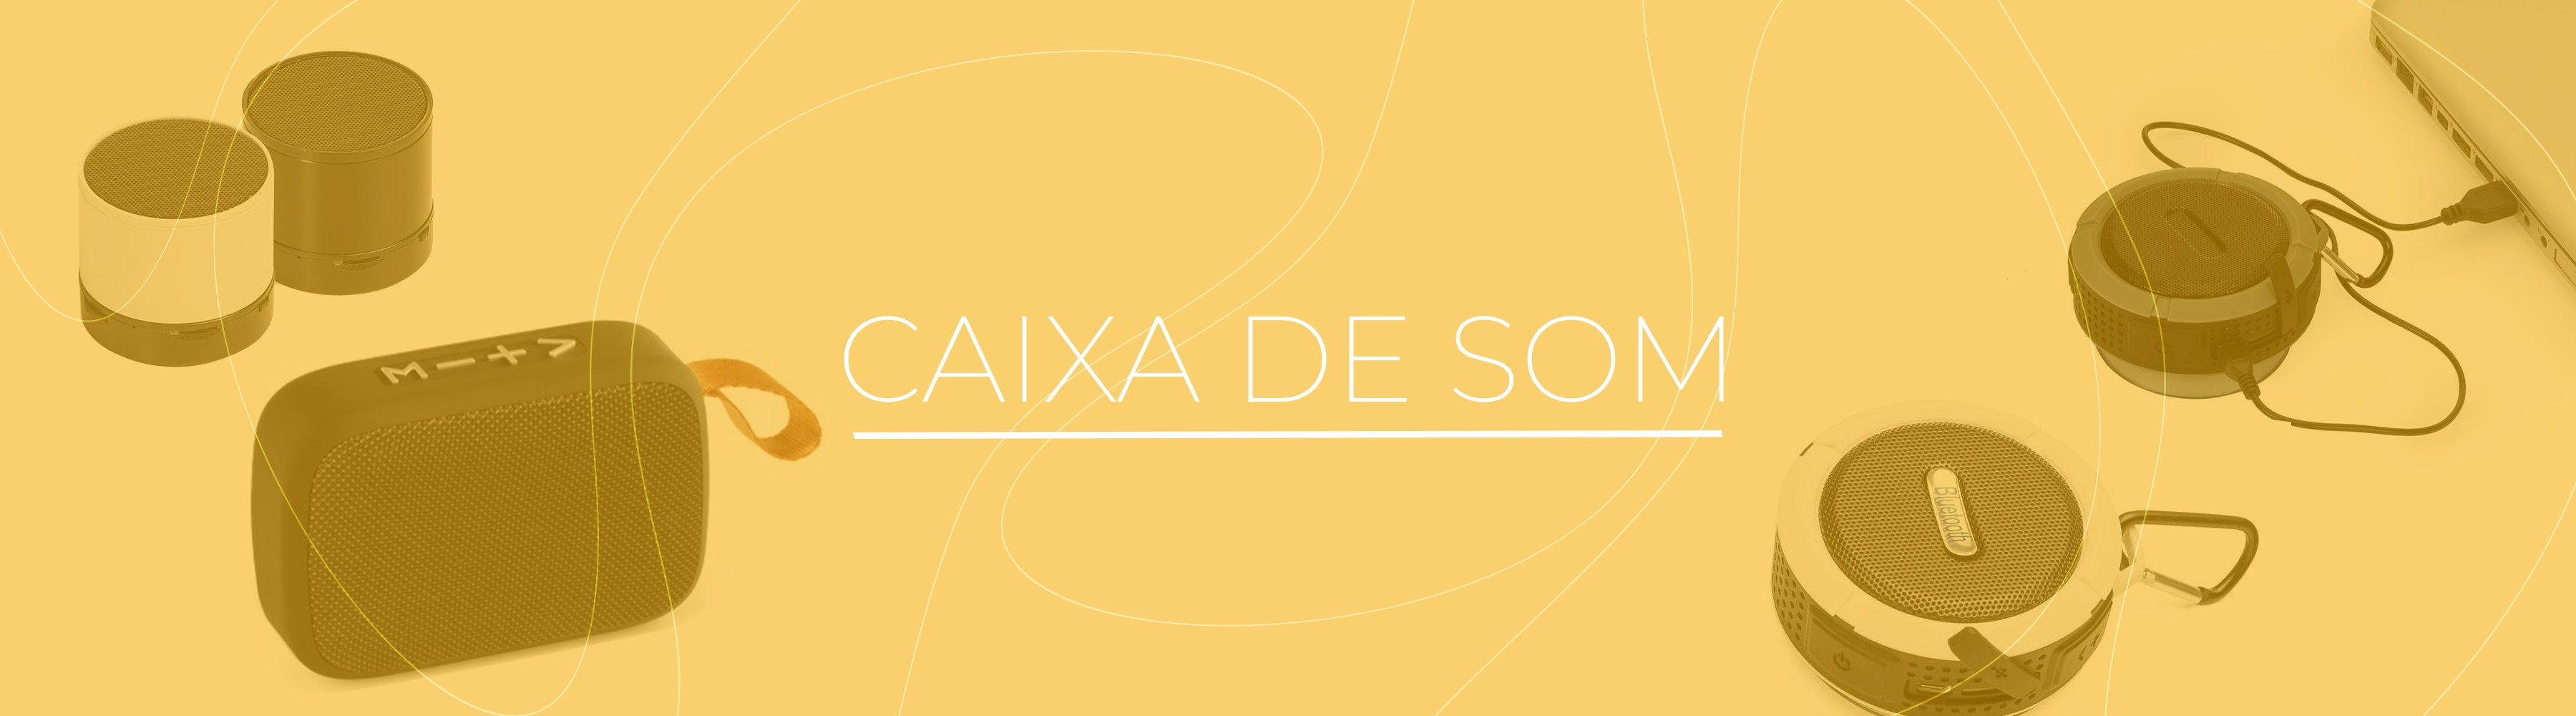 Categoria Caixa de Som